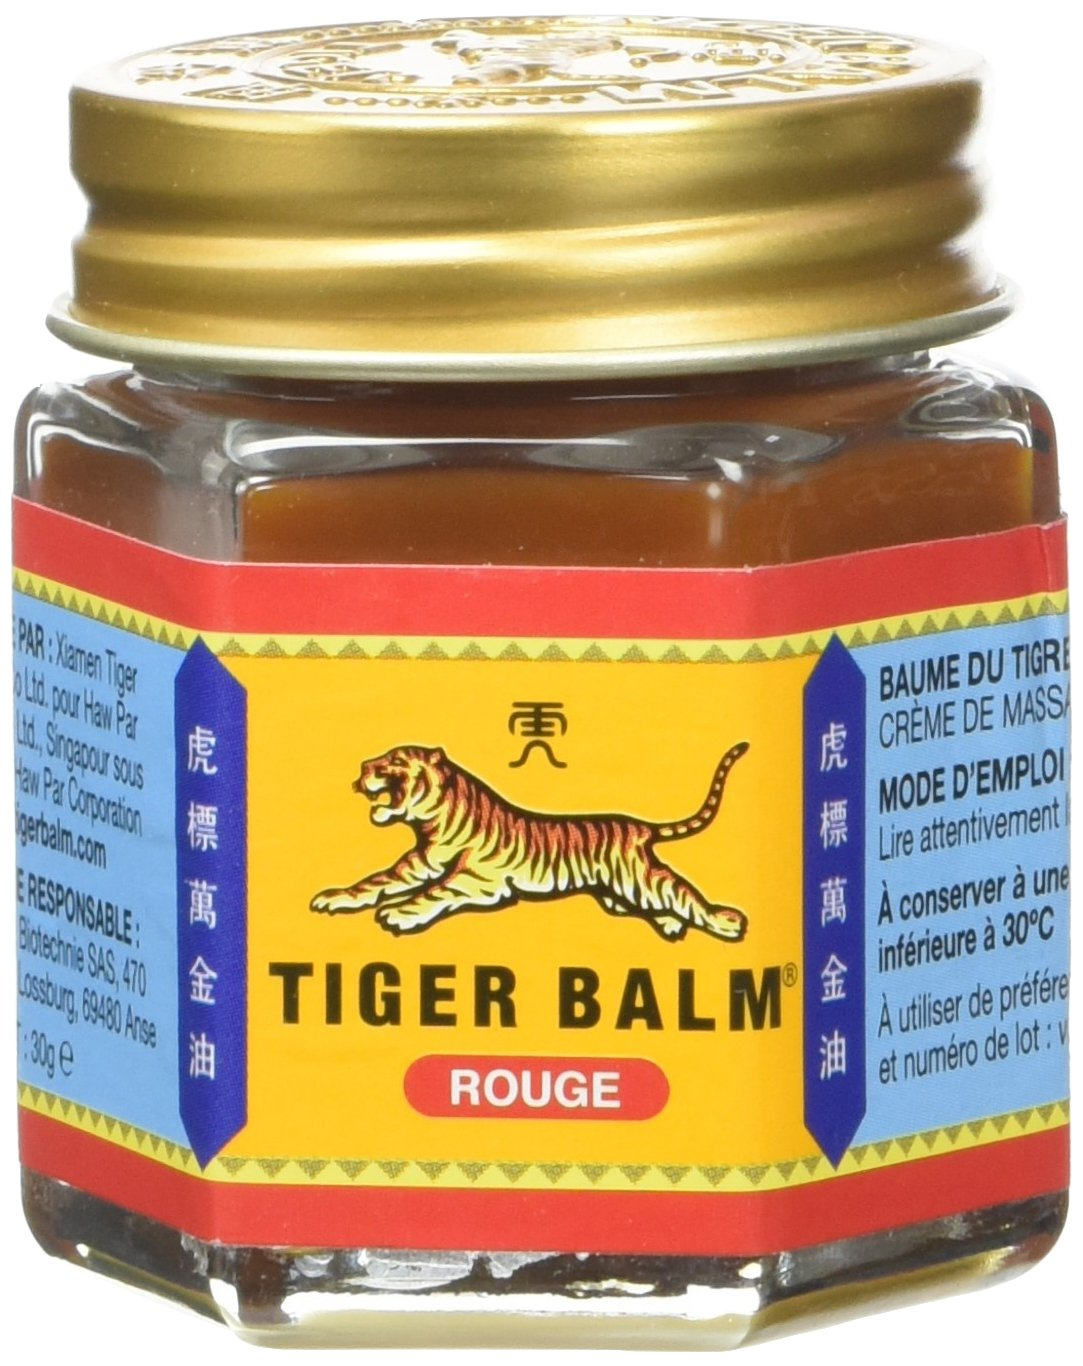 Tiger Balm Red 1.05ounces (30g) (Pain Relief) - NaturalBalm 16744